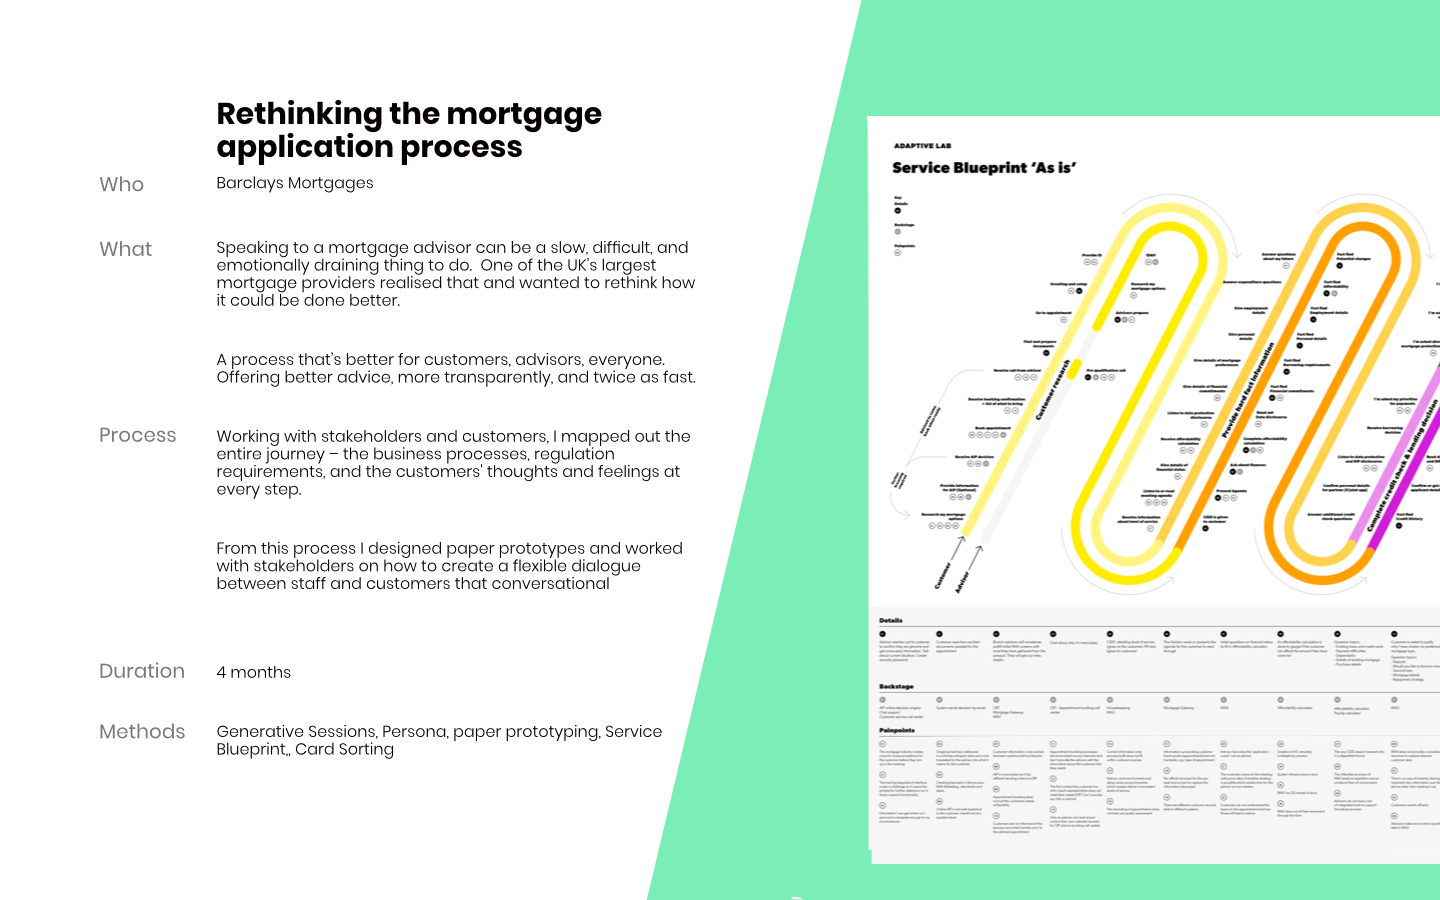 Barclays Mortgages Service Design work